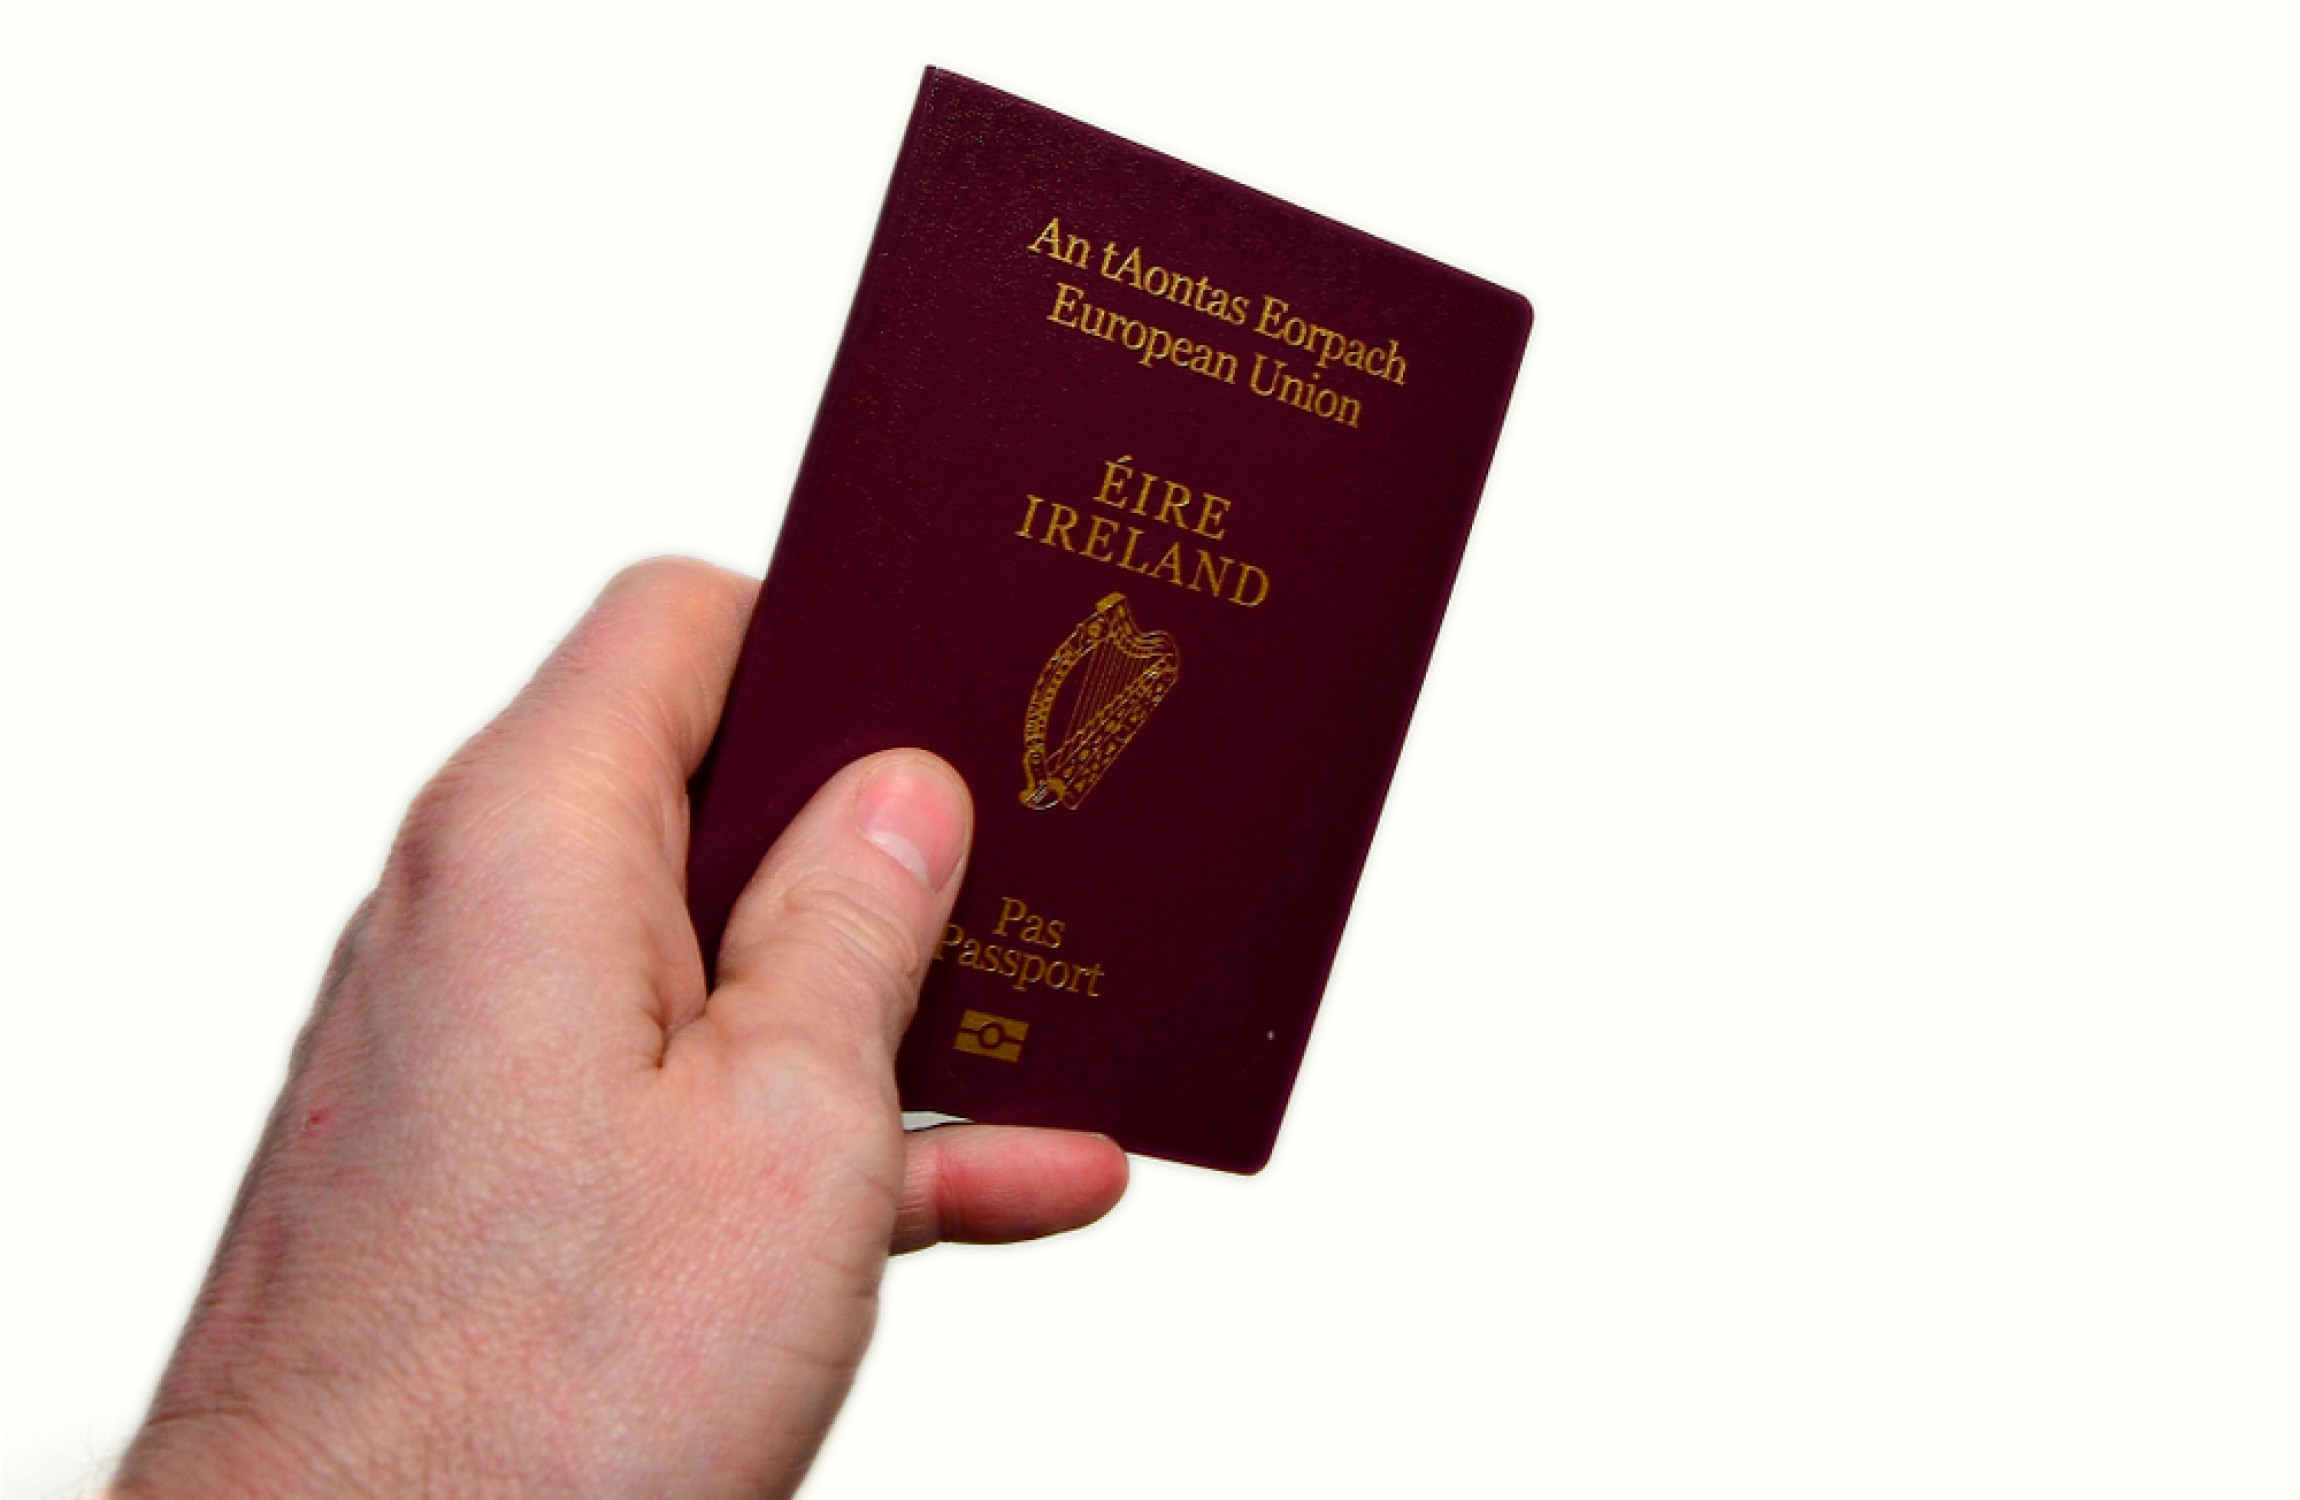 70 000 Passport Applications Outstanding And Staff Numbers Have